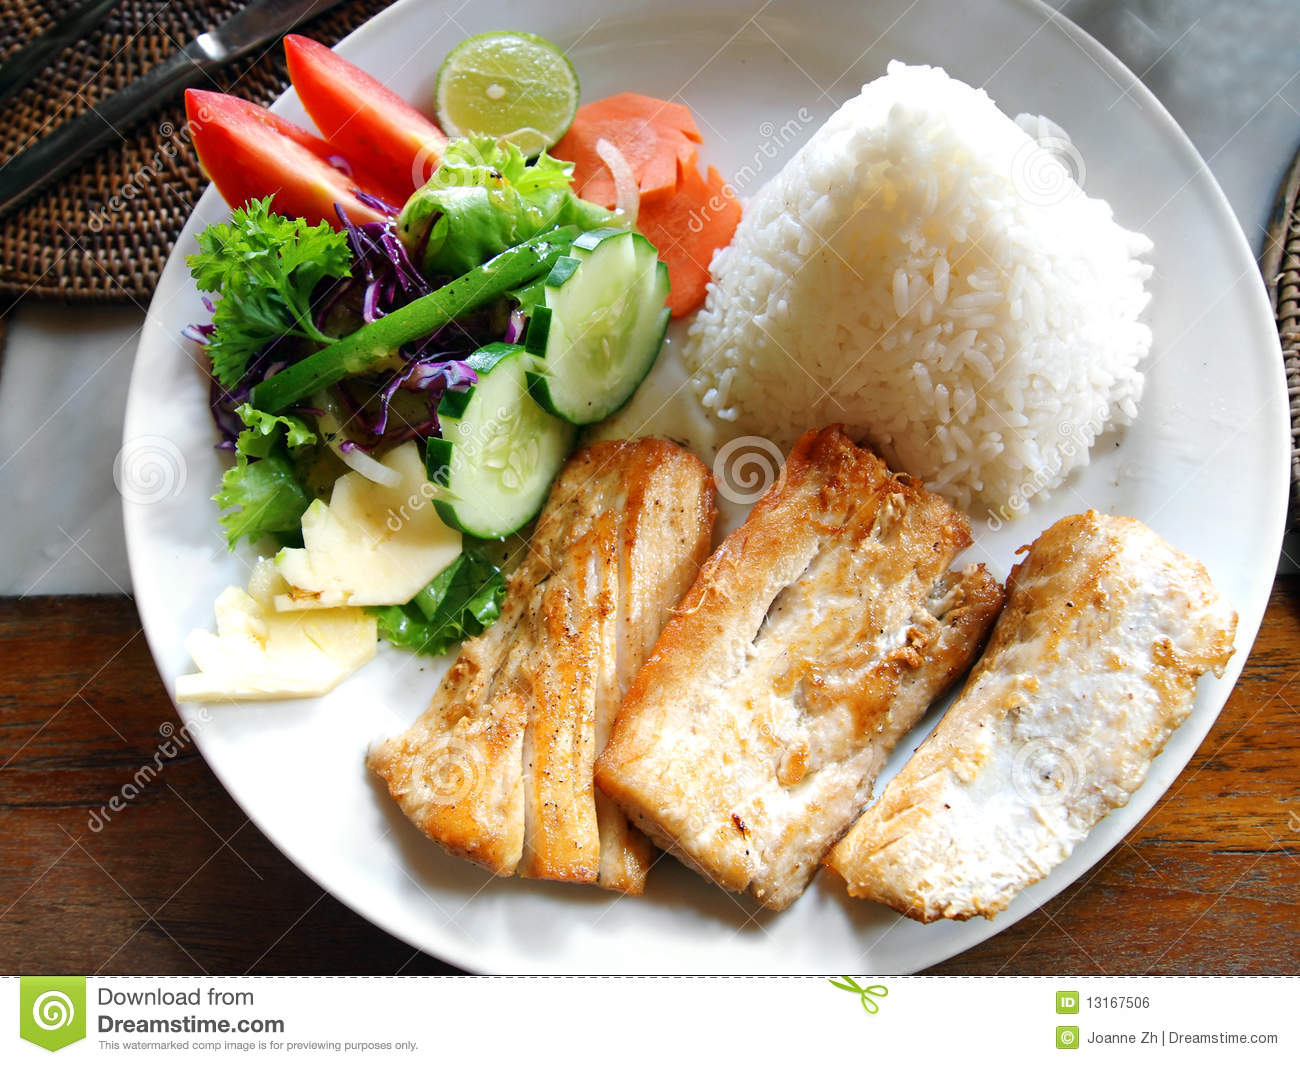 Fish dish with vegetable side salad royalty free stock for Rice dishes with fish